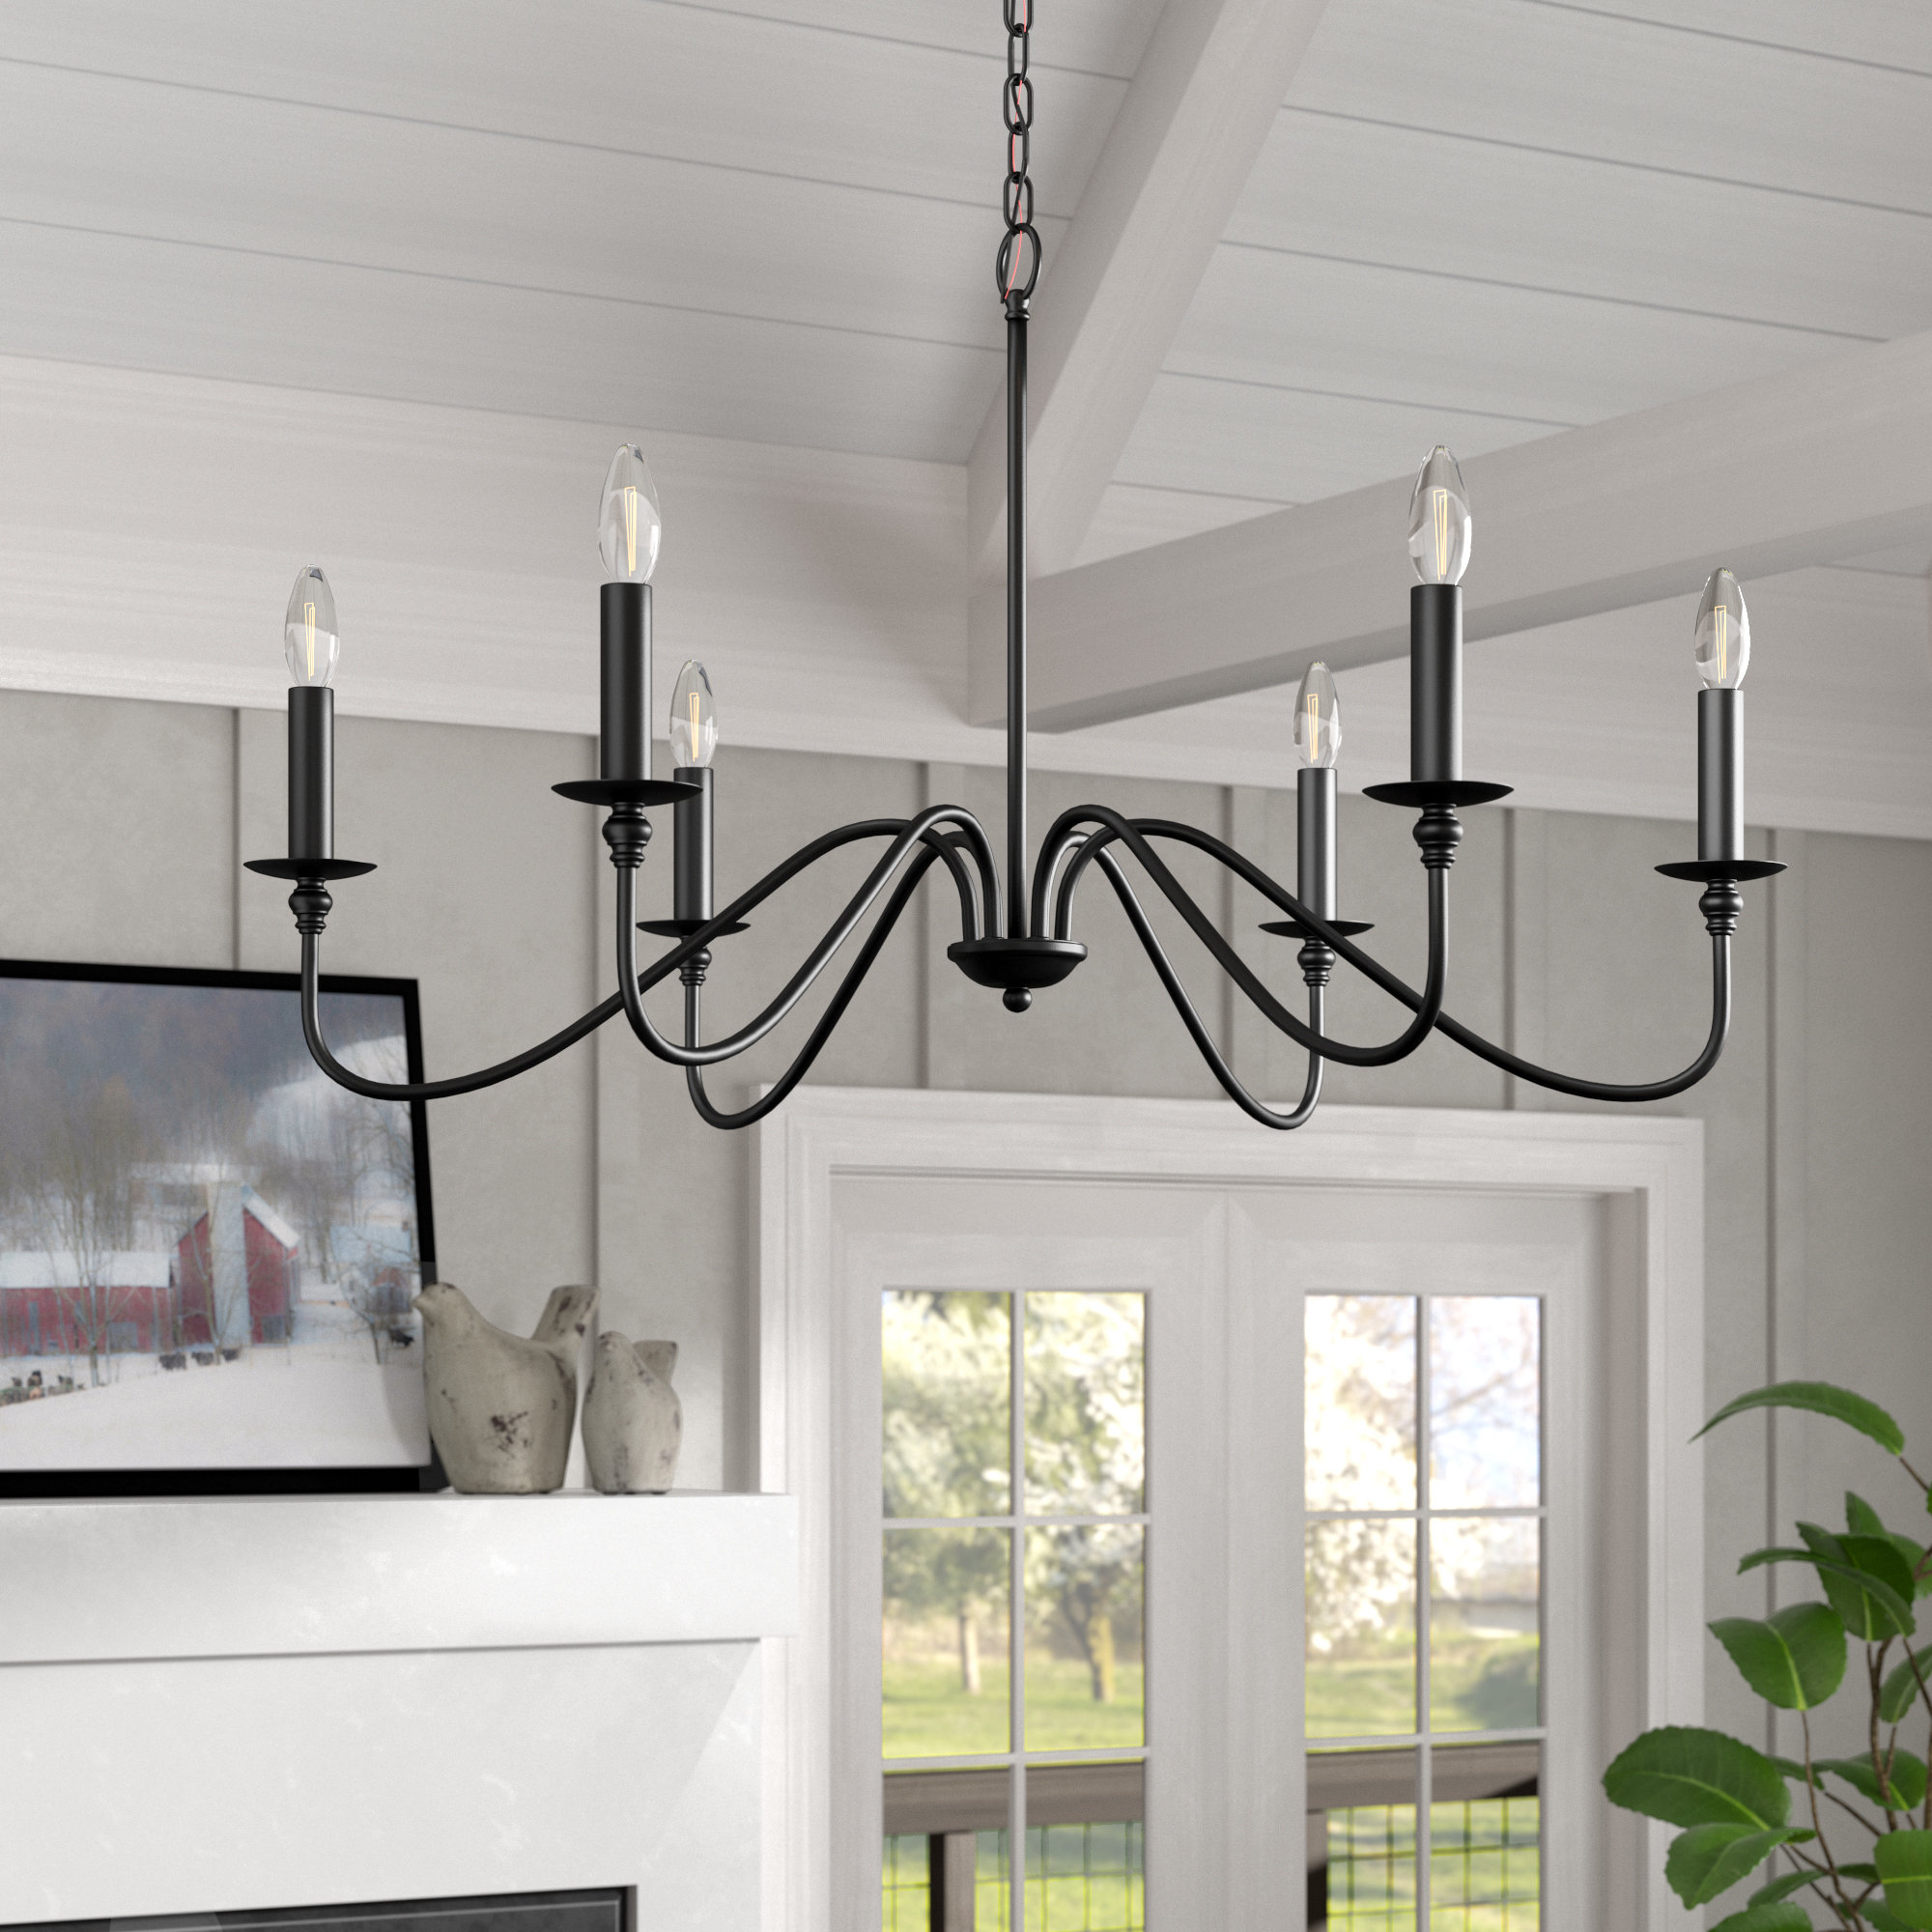 Best And Newest Hamza 6 Light Candle Style Chandelier Pertaining To Perseus 6 Light Candle Style Chandeliers (View 12 of 20)